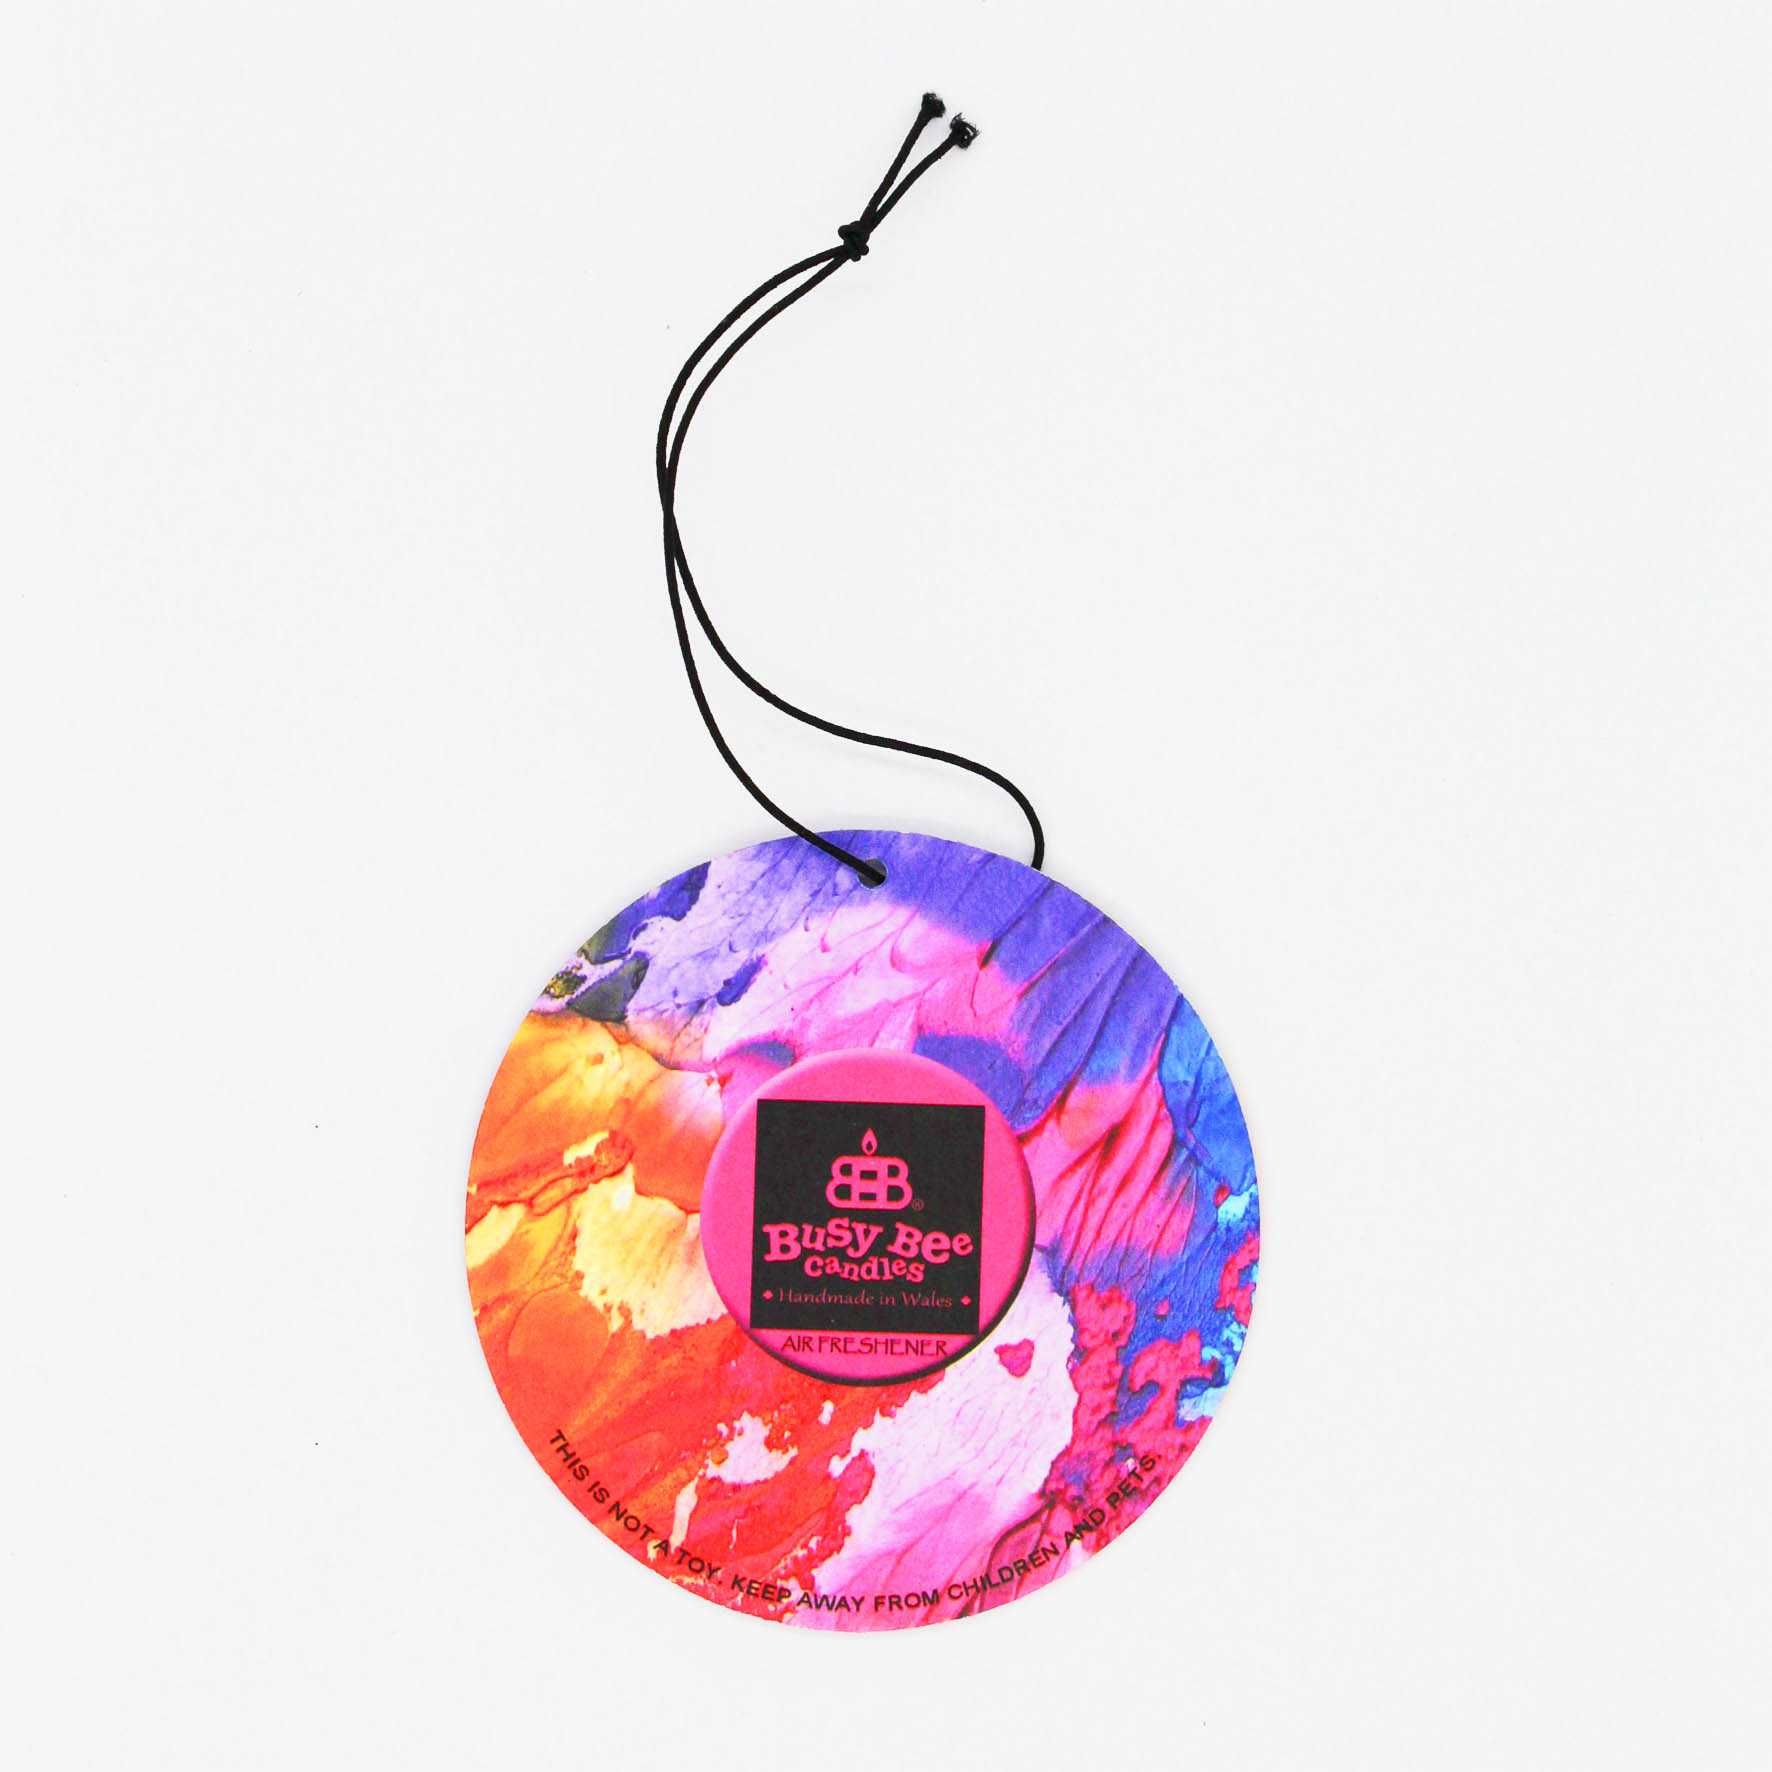 Toffee Apple Hanging Air Freshener